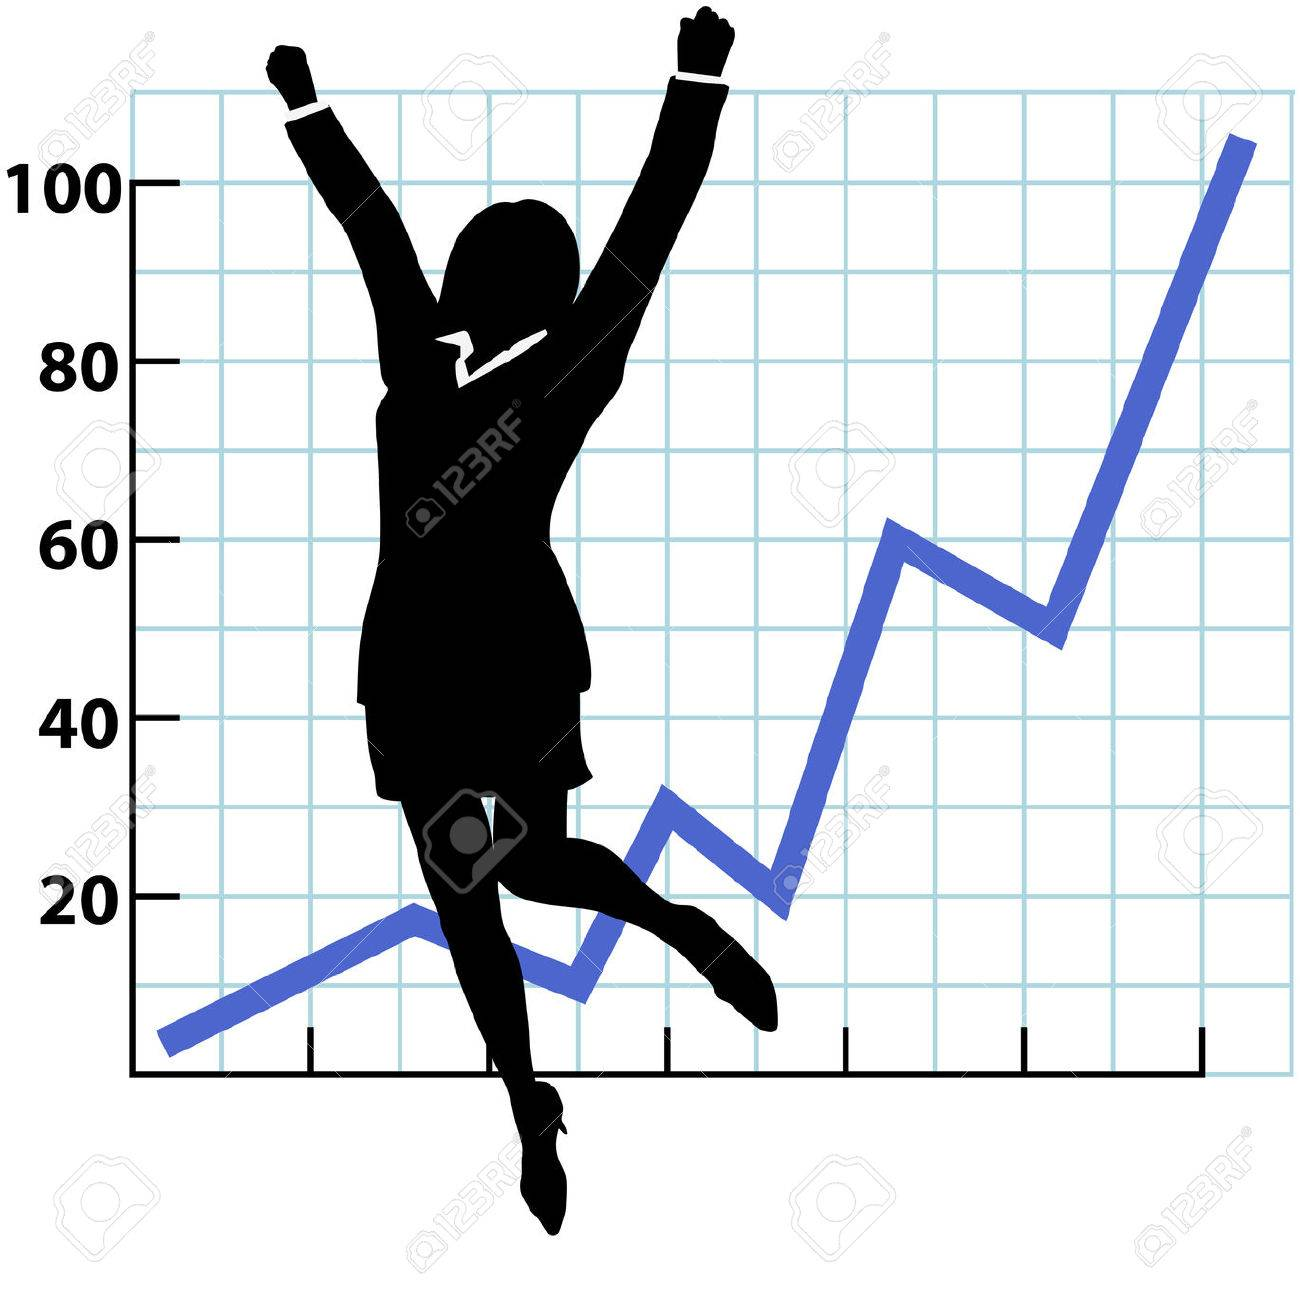 A business woman silhouette jumps and raises her fists in celebration of success on a chart of growth or profit. Stock Vector - 6112092